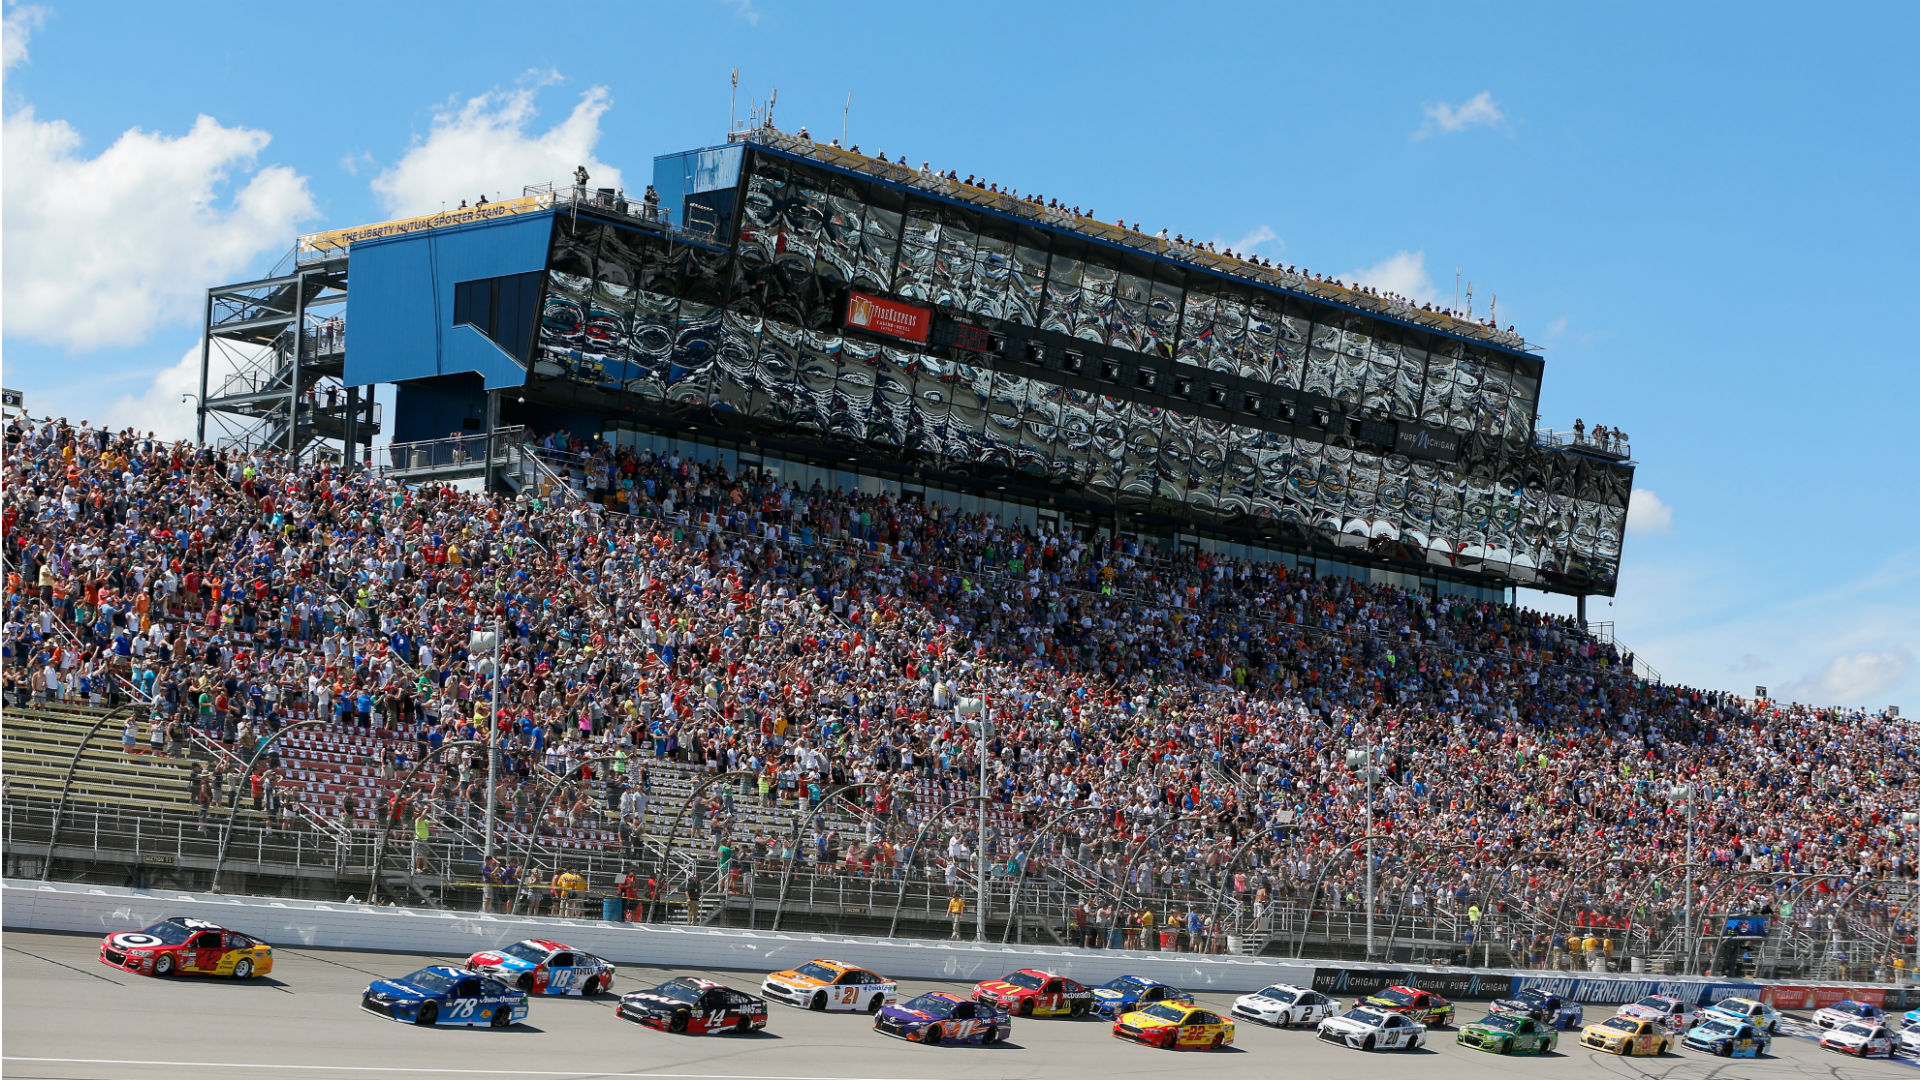 NASCAR at Michigan: Live updates, highlights of the FireKeepers Casino 400